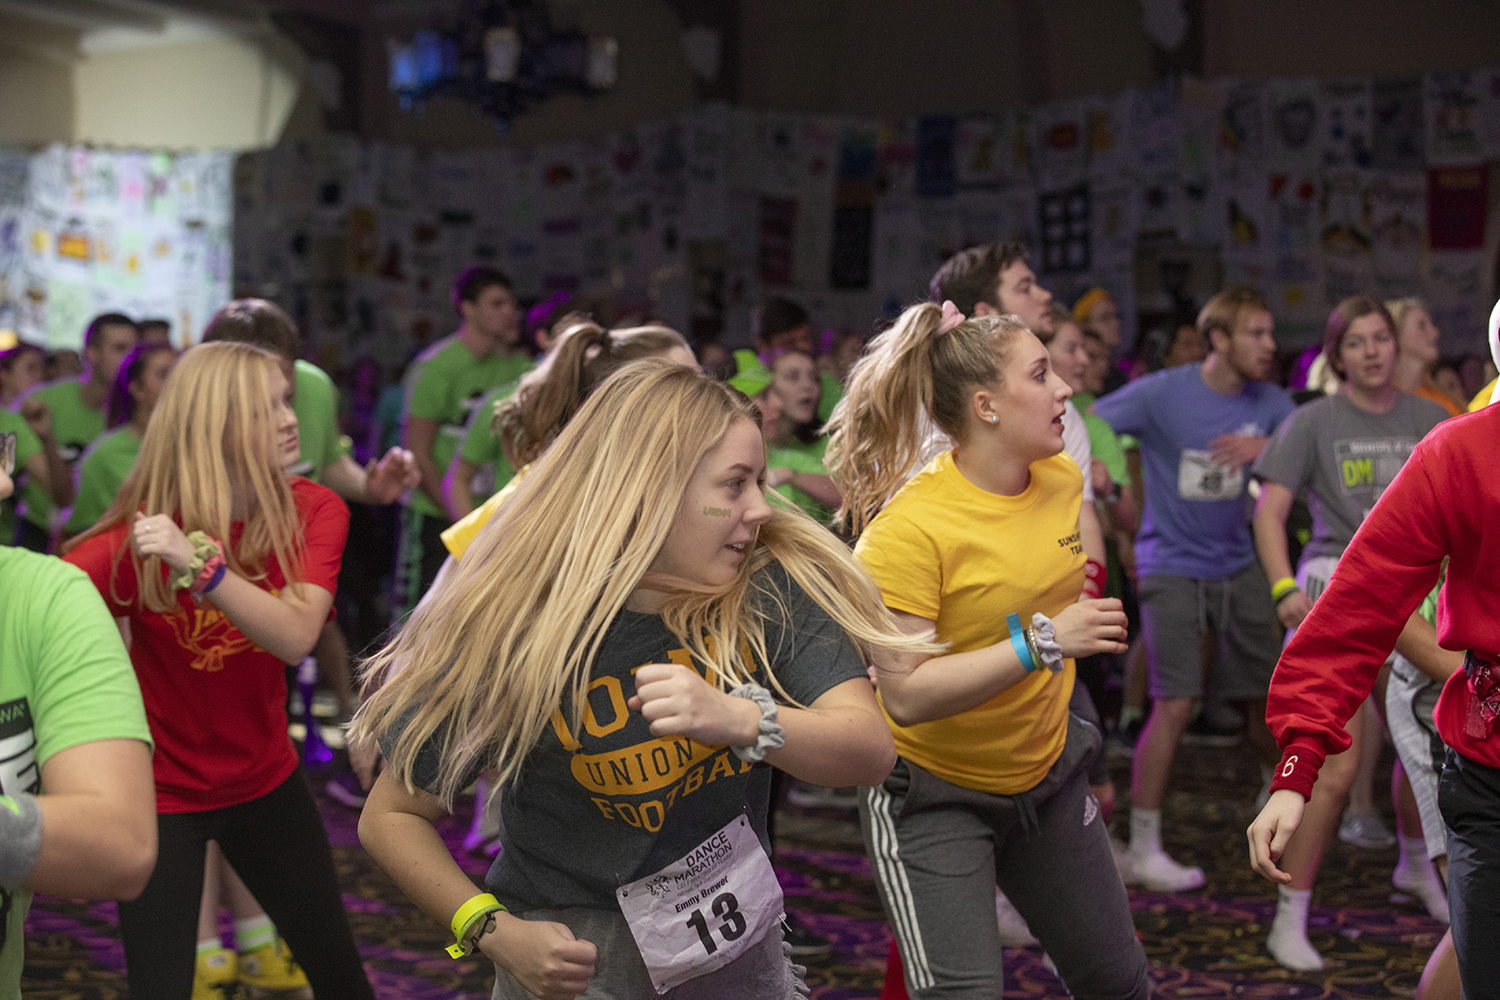 Participants+dance+in+the+early+morning+hours+during+Dance+Marathon+25+at+the+Iowa+Memorial+Union+on+Saturday%2C+February+2%2C+2019.